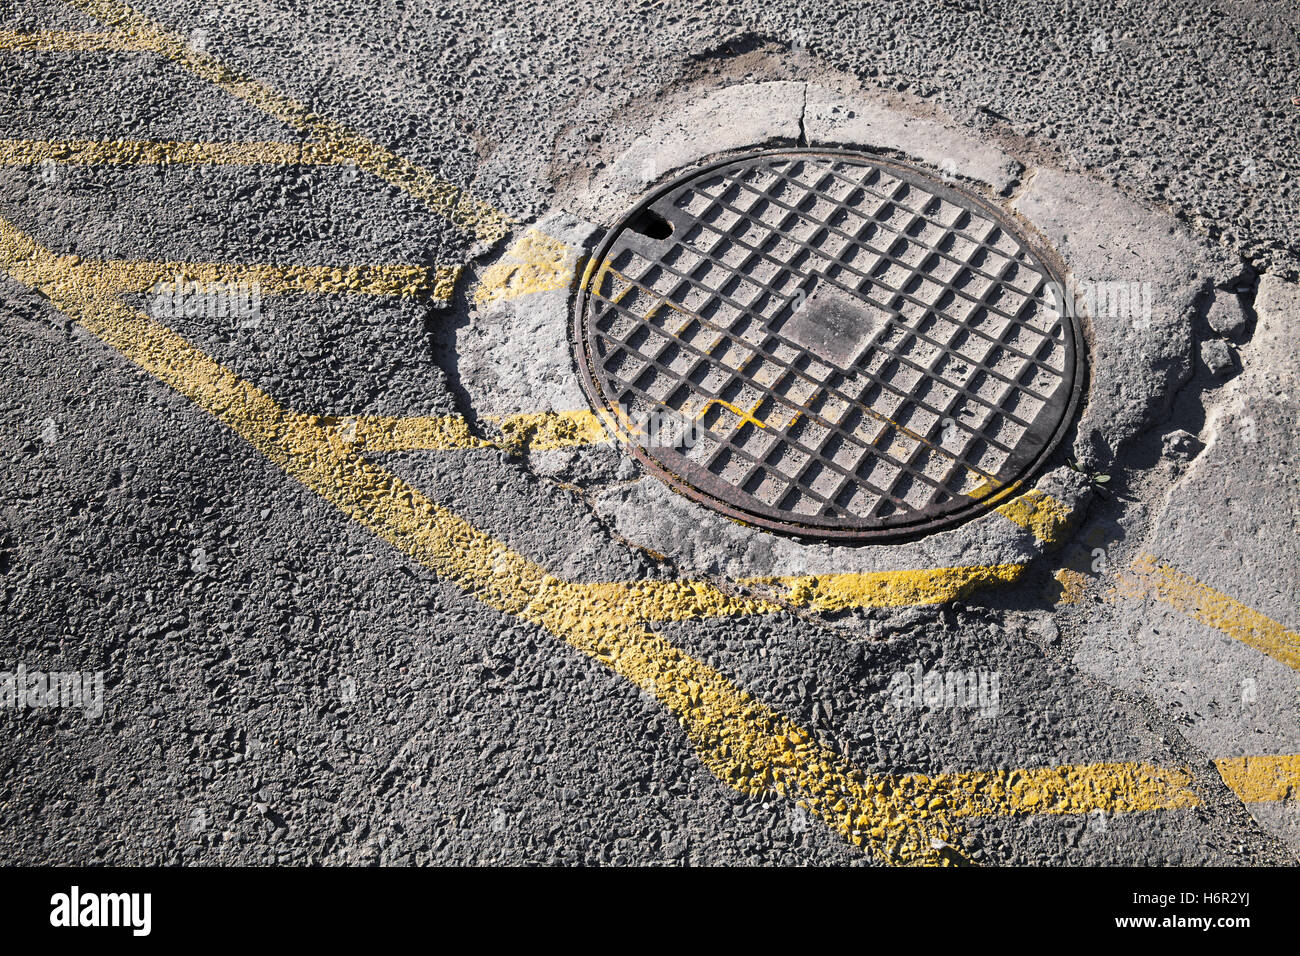 Round hatch in urban pavement, sewer manhole cover with ...